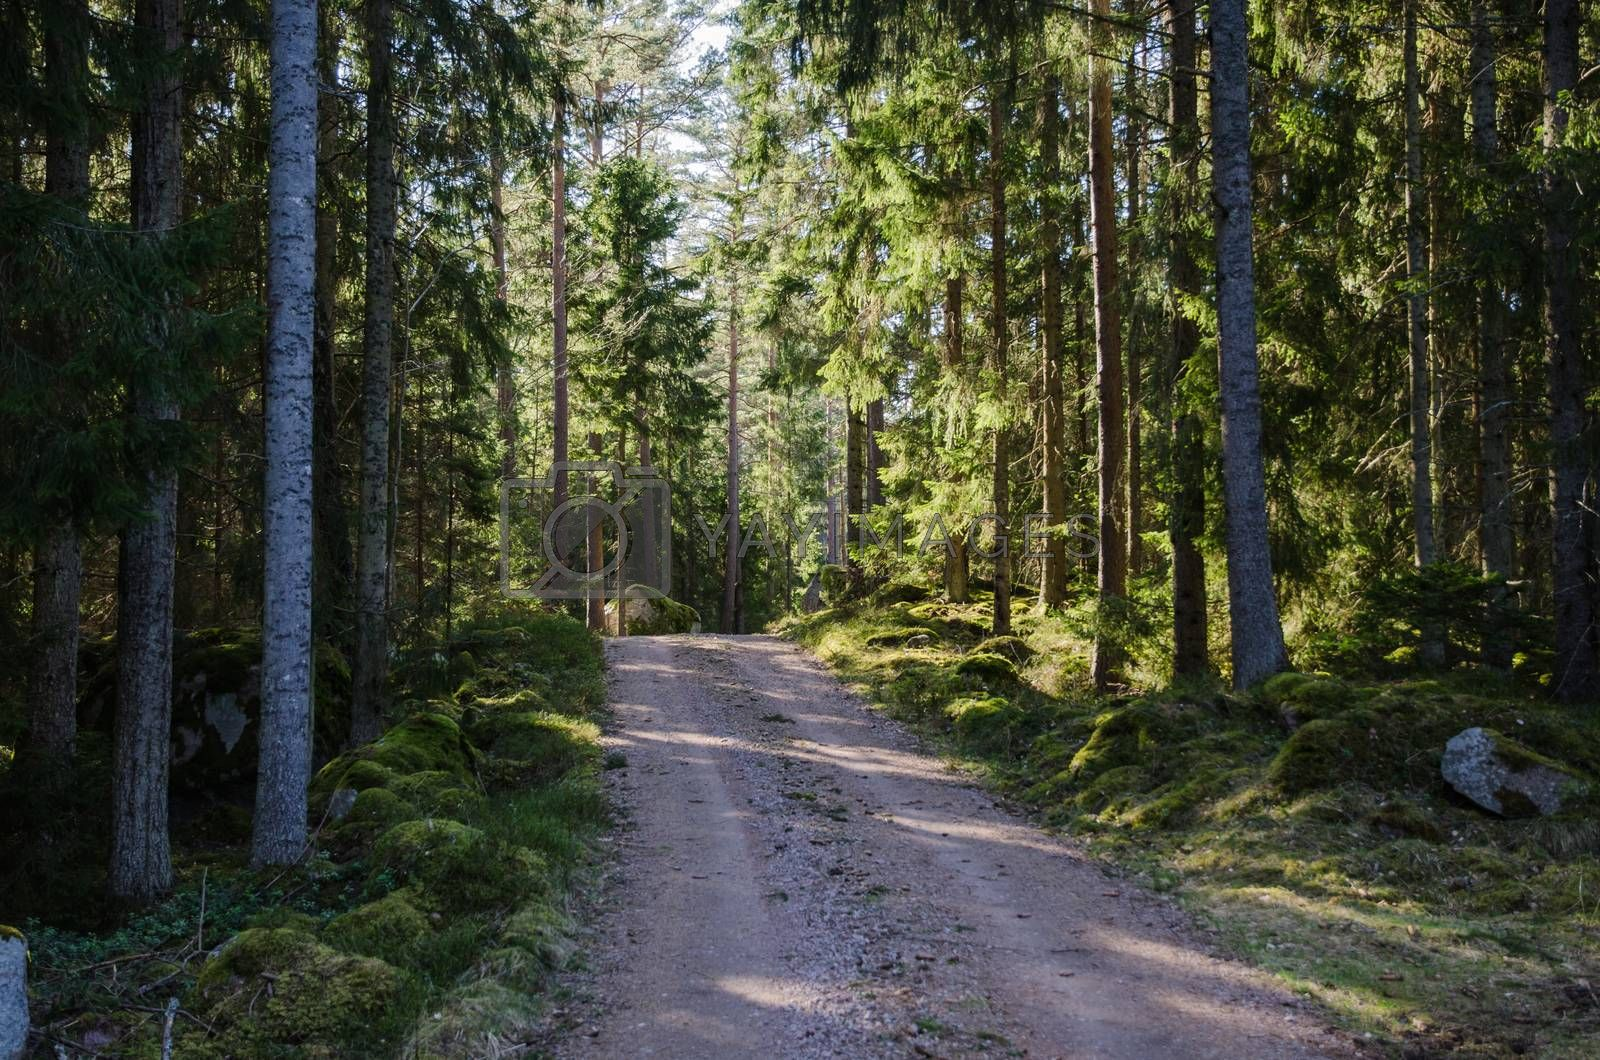 Royalty free image of Dirt road through a shiny forest by olandsfokus